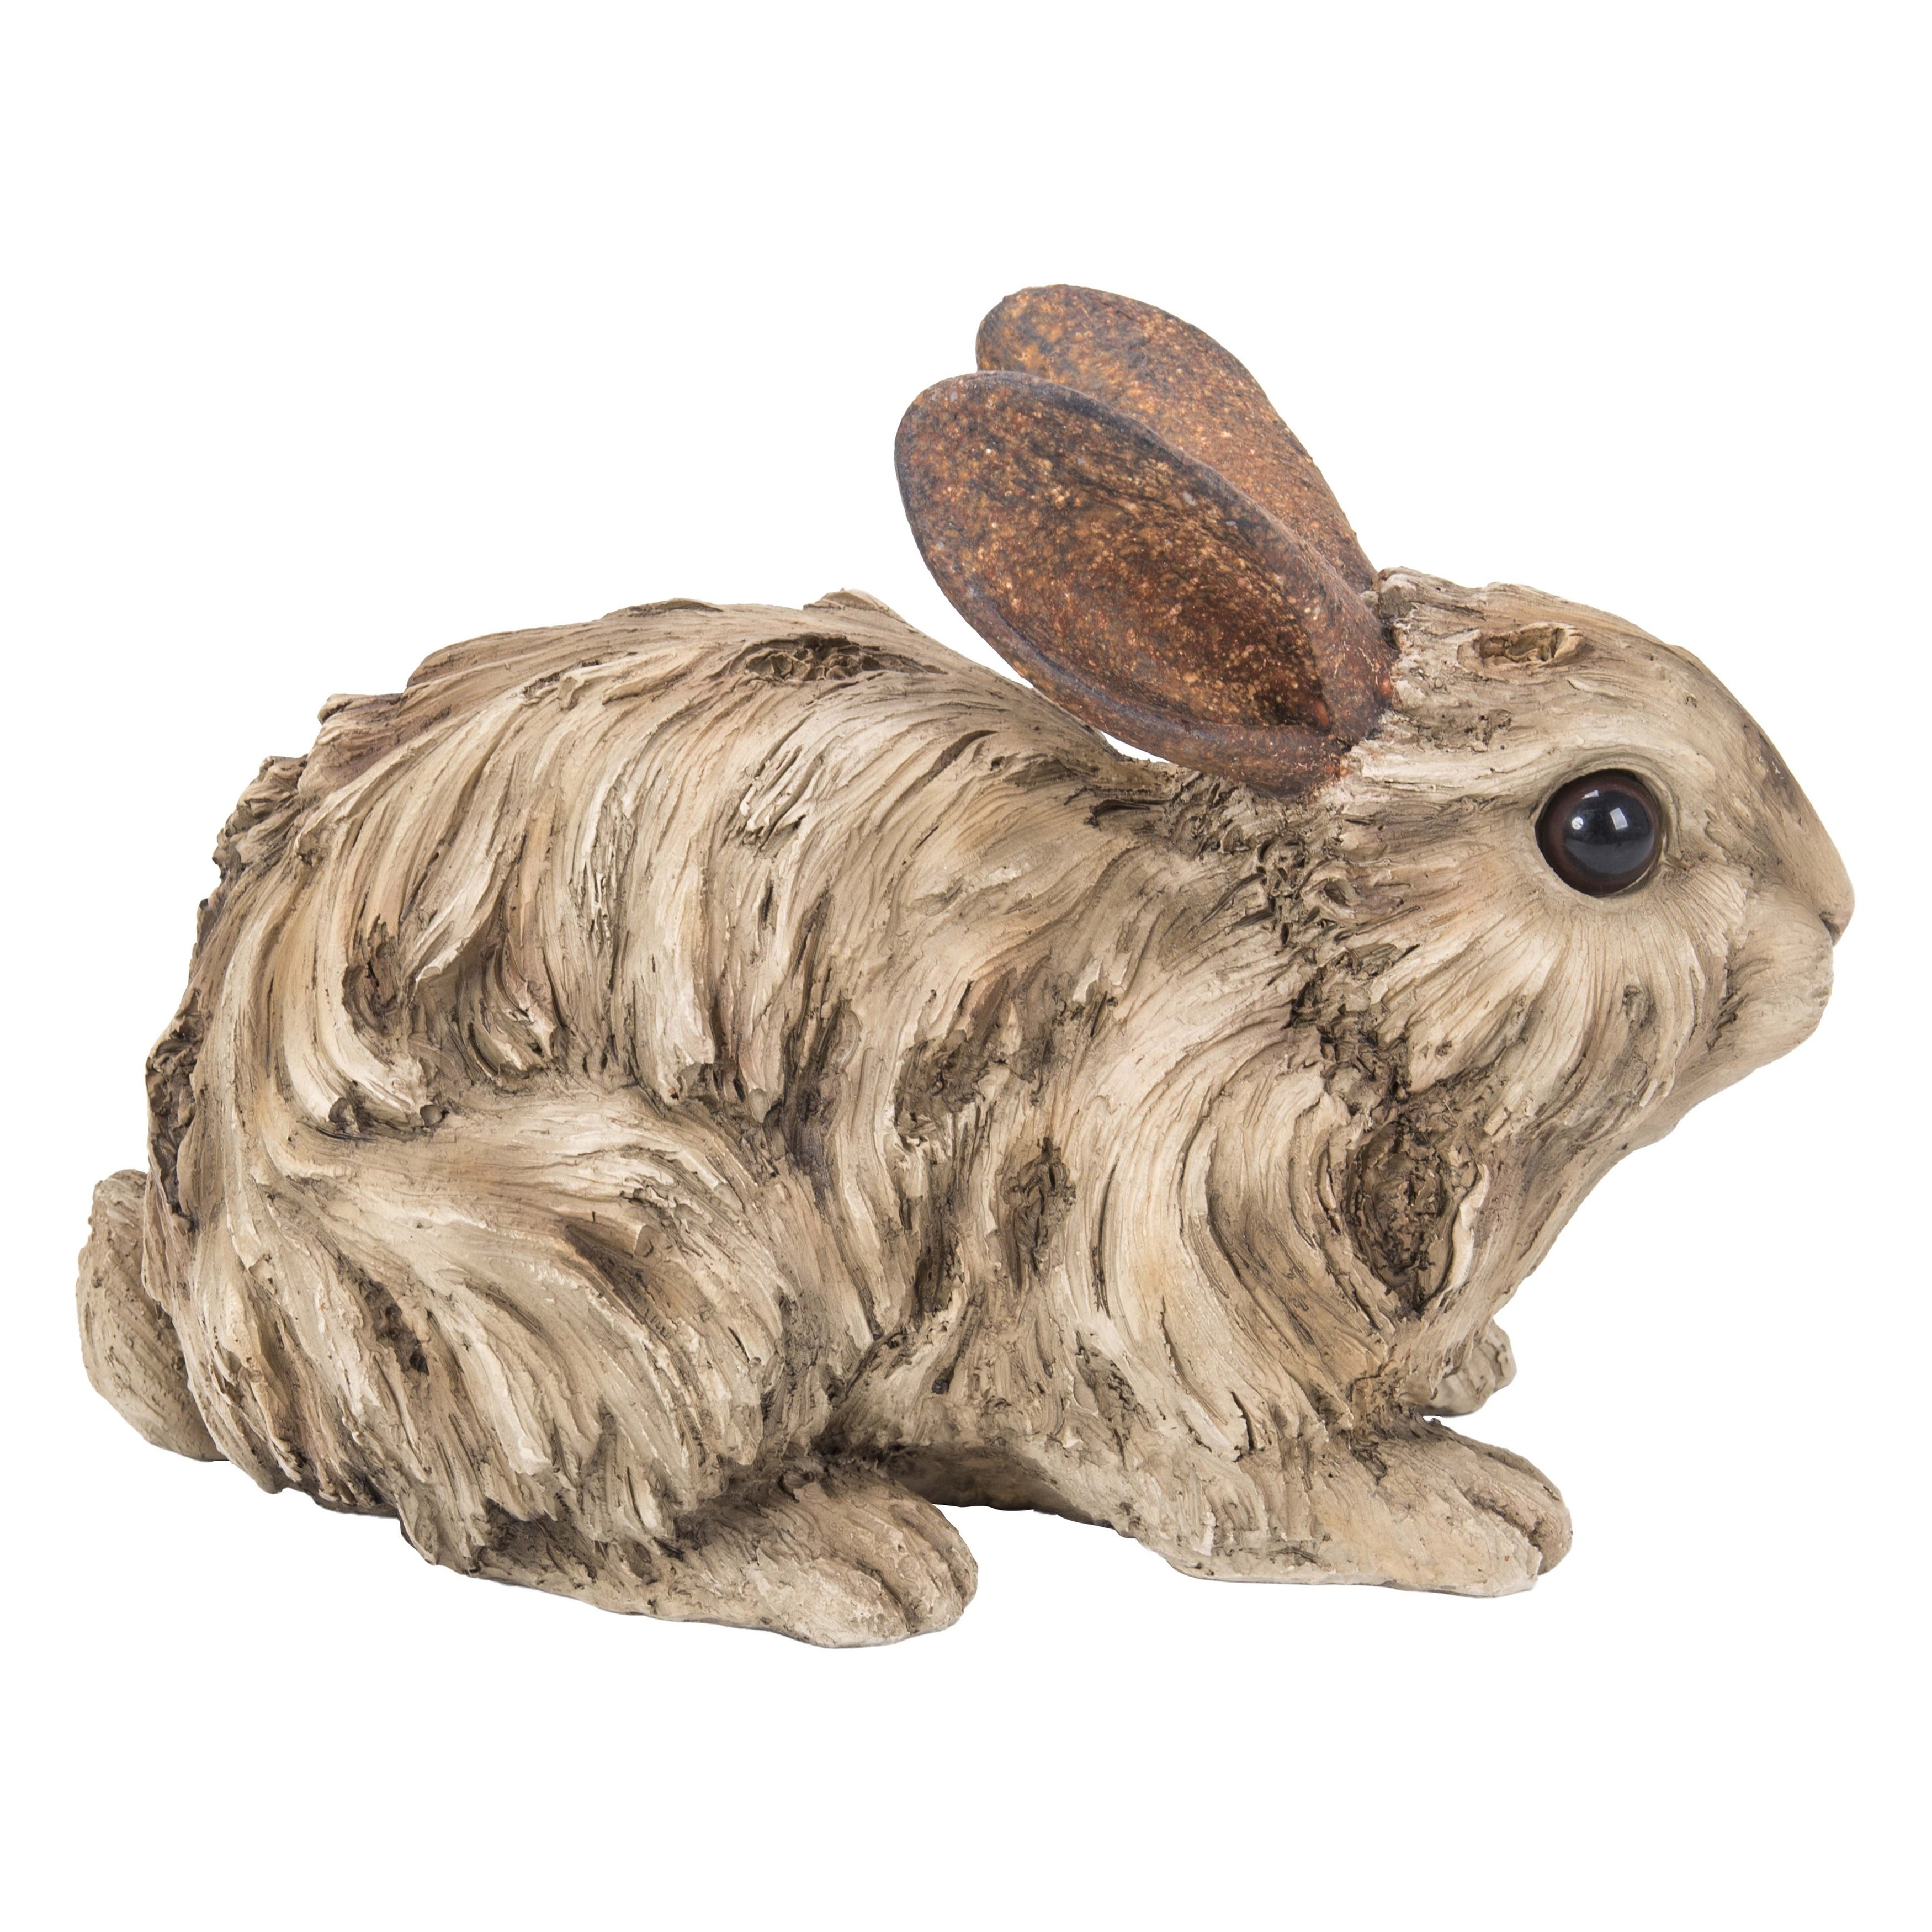 Rabbit Small Figurine Statue Carved Driftwood Look Home Garden Free Ship New